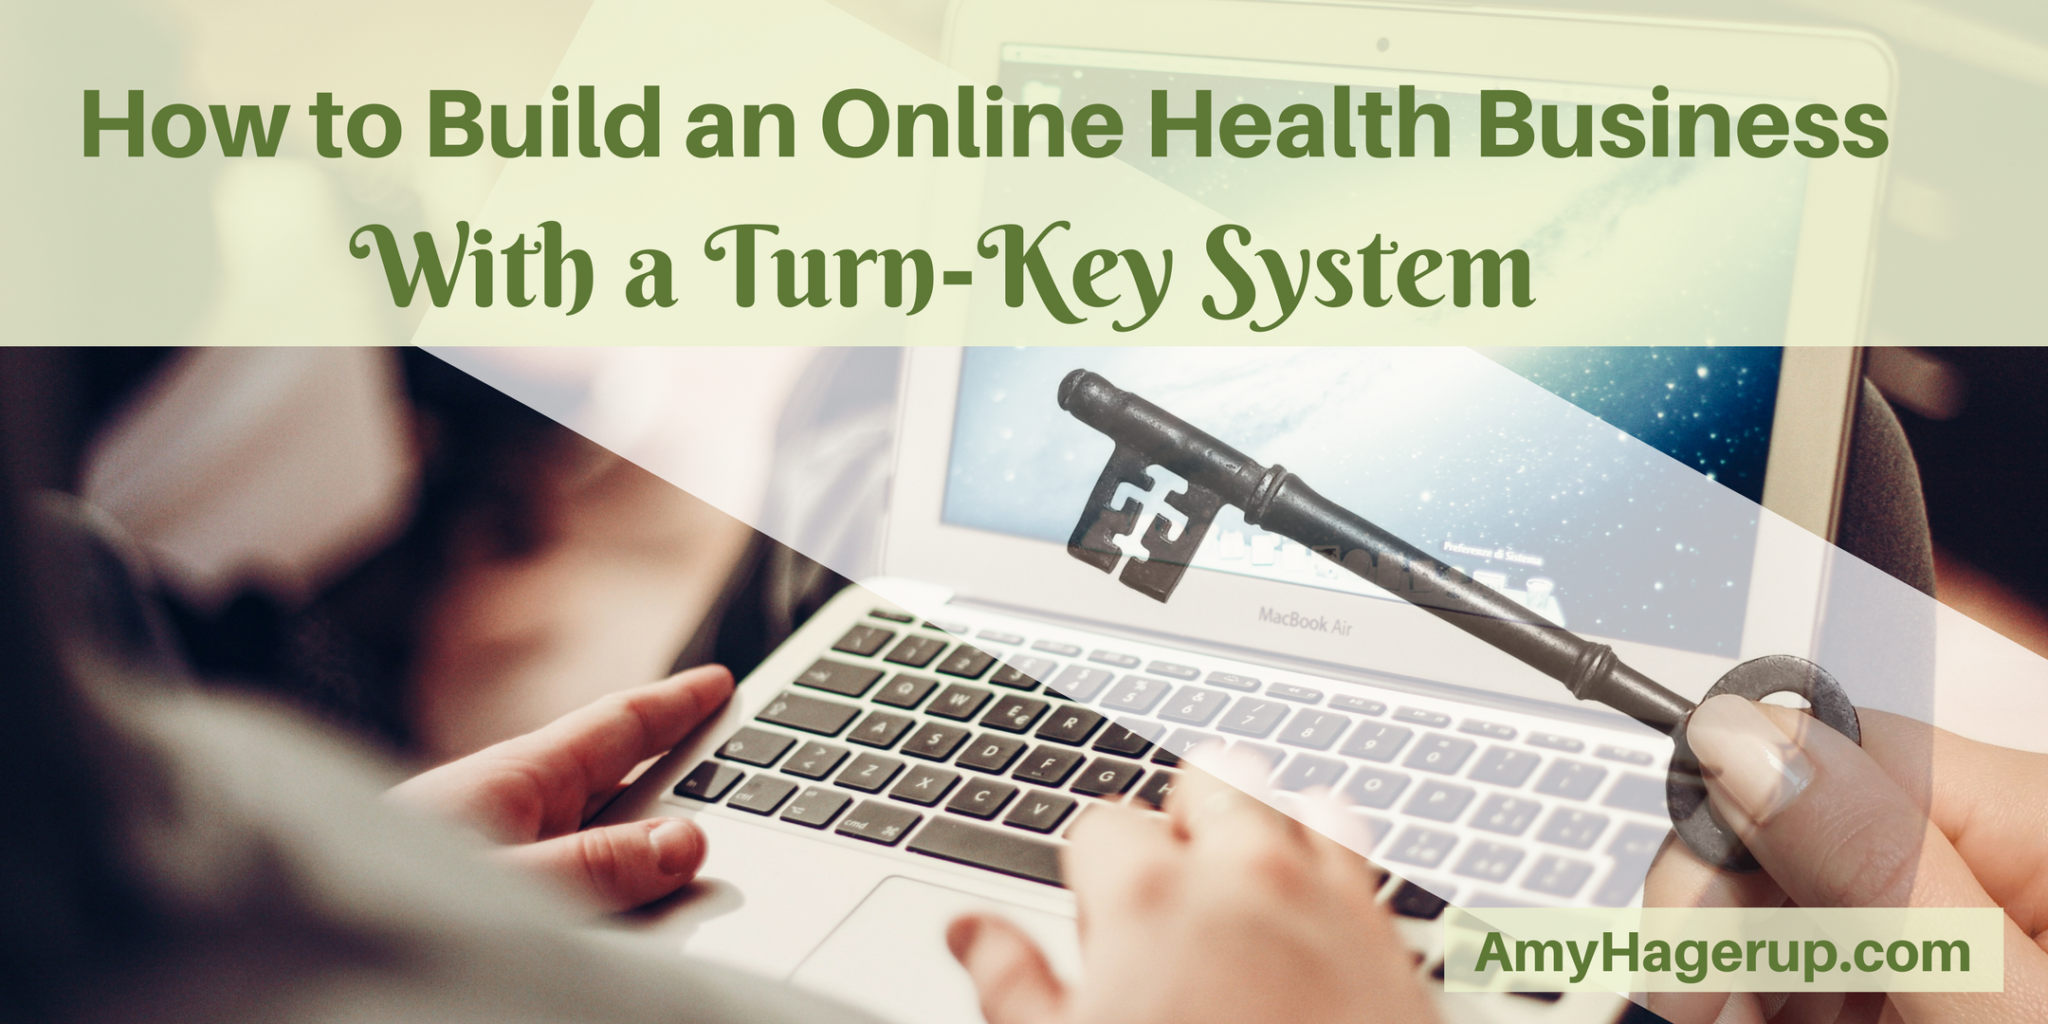 Check out how to build an online health business with a turn-key system